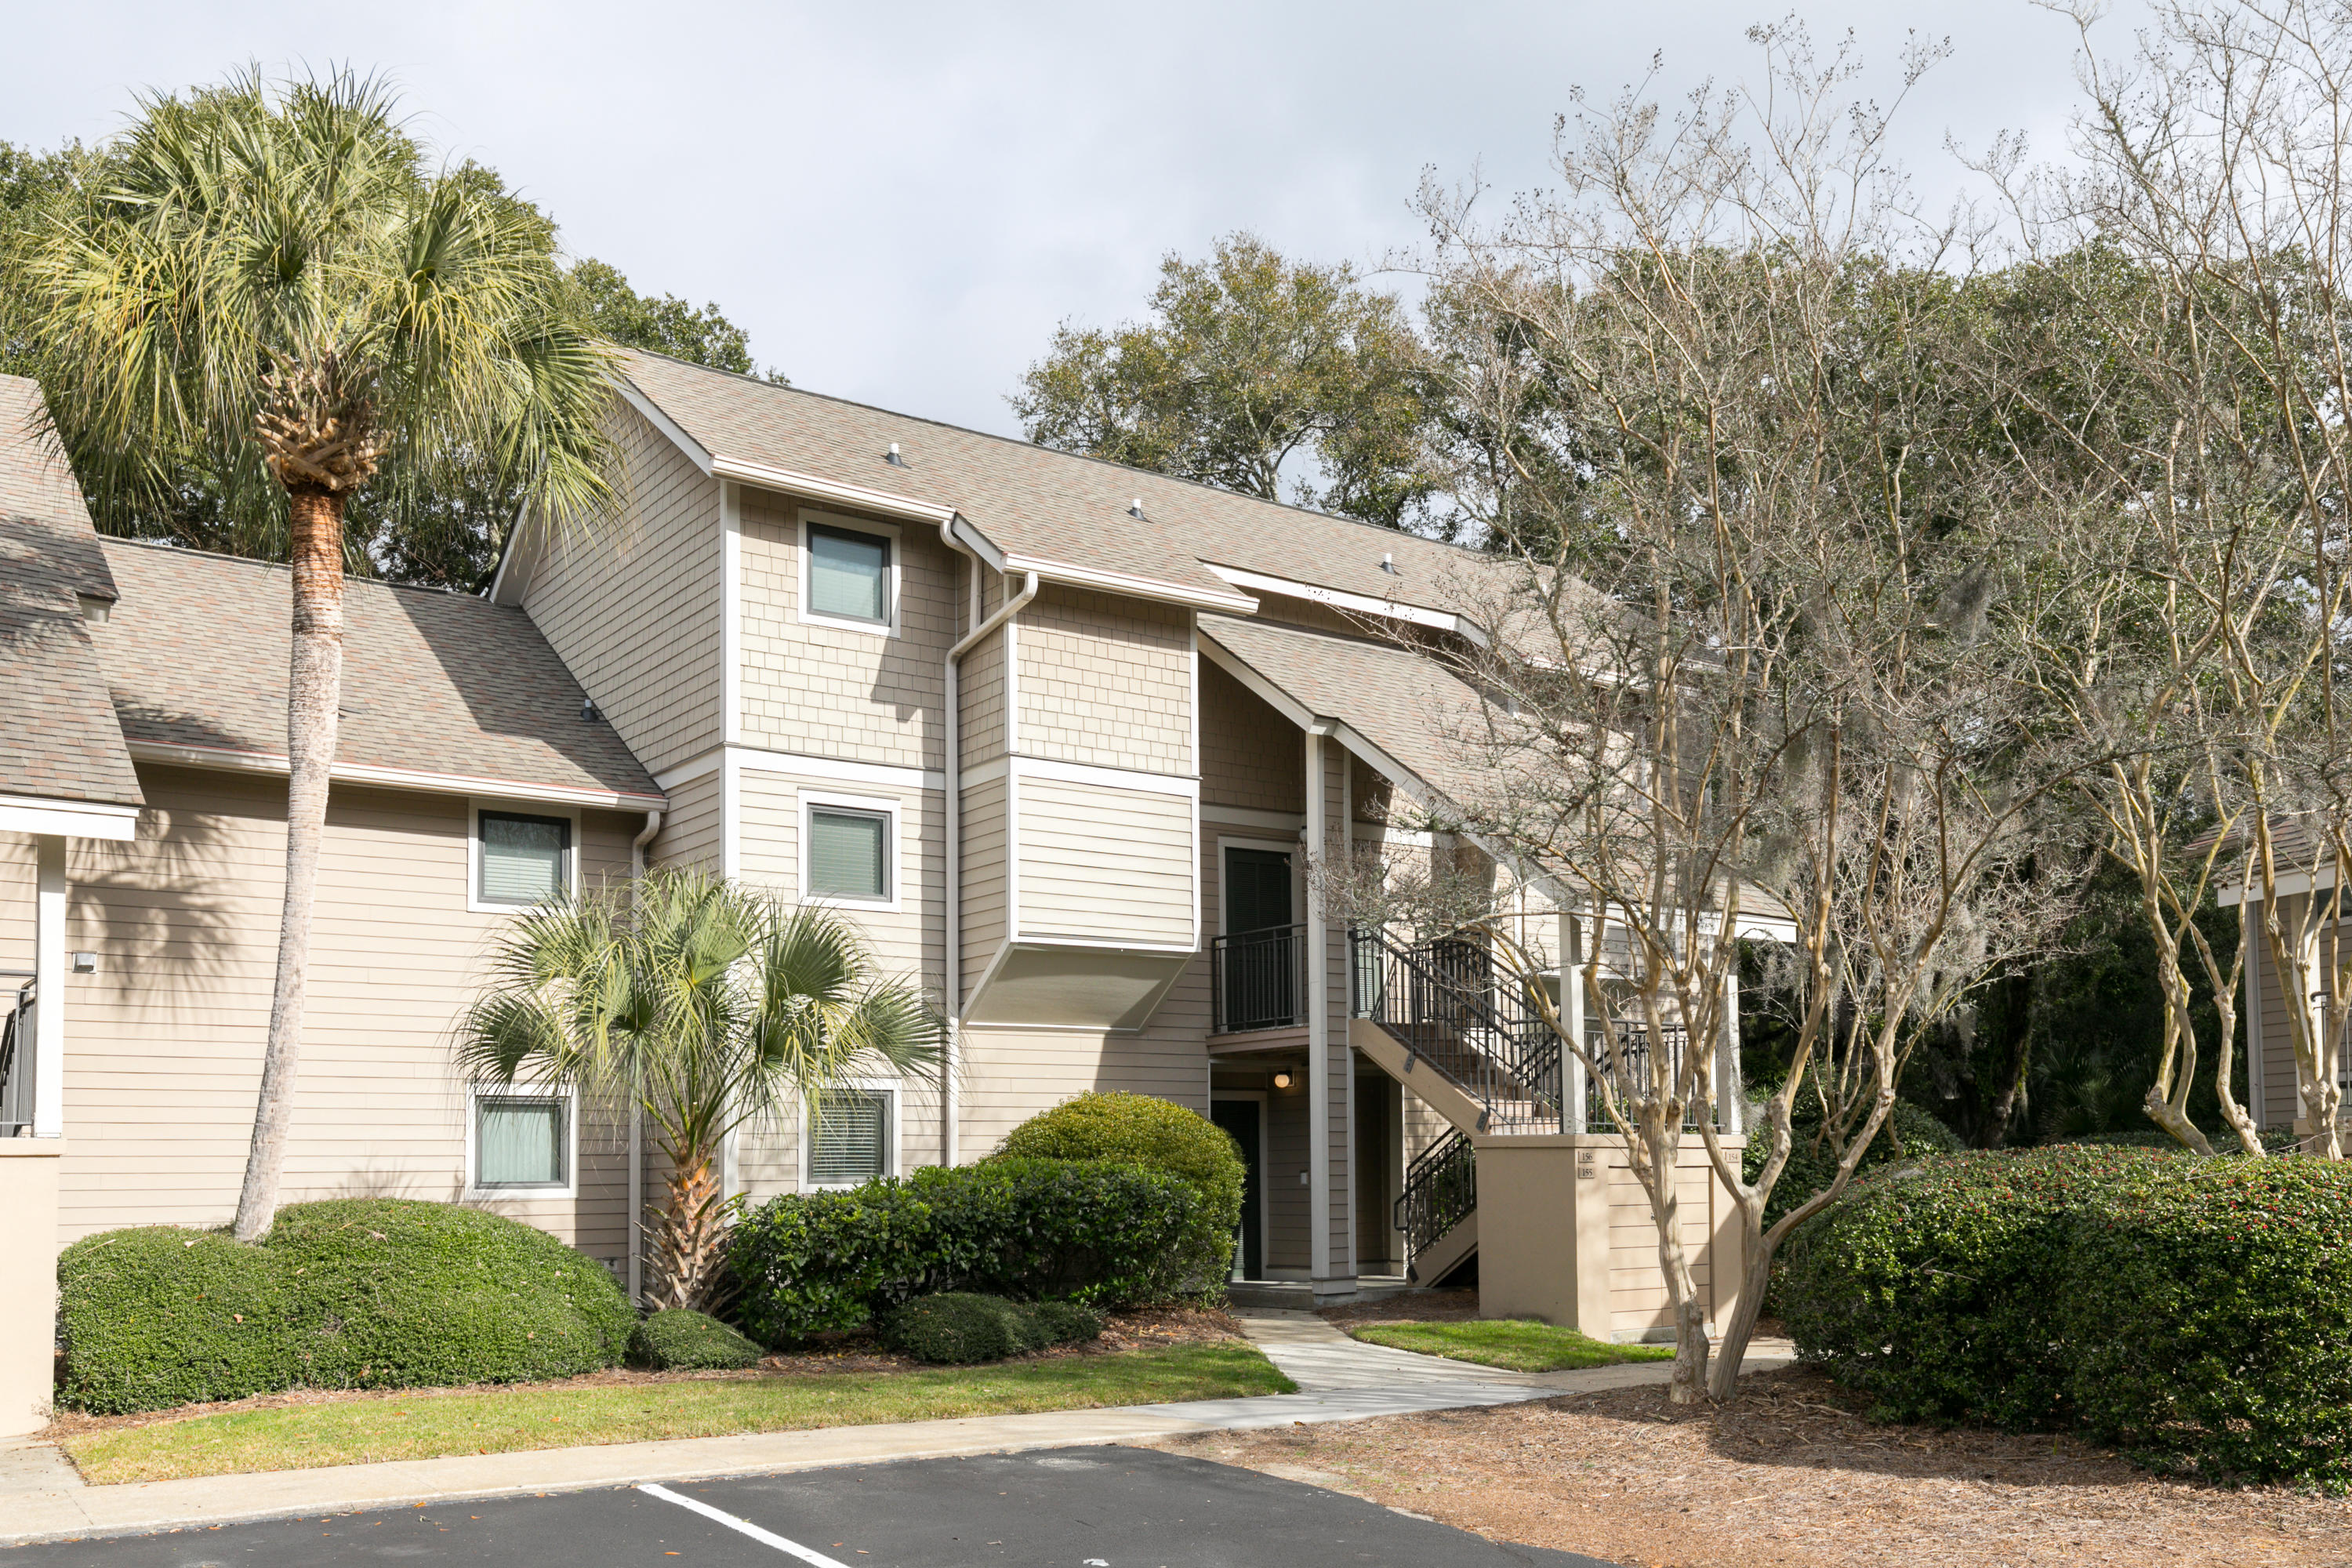 155 High Hammock Seabrook Island, Sc 29455